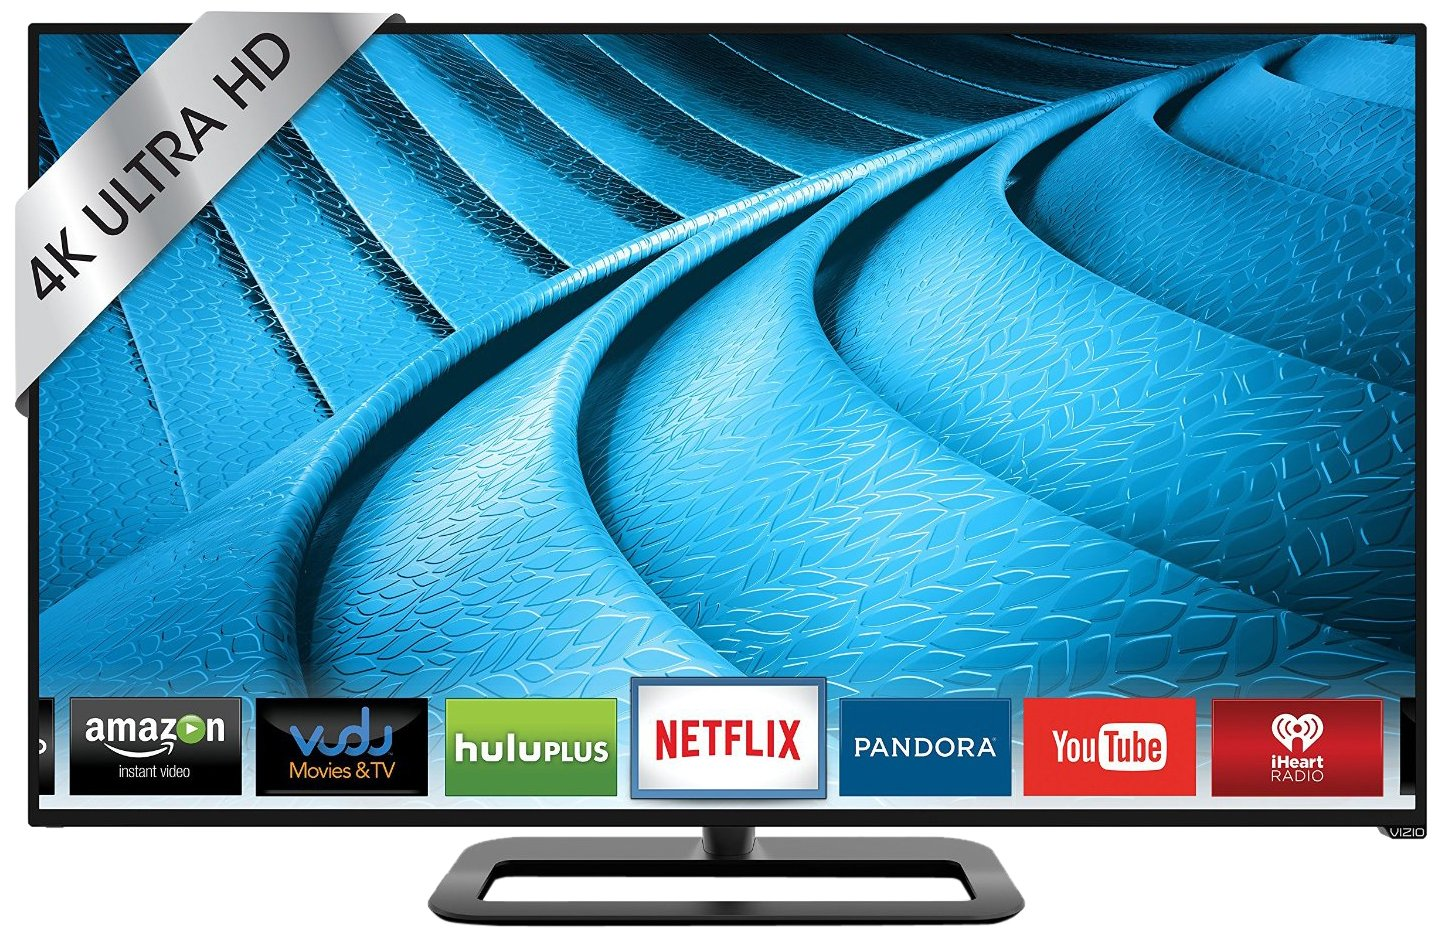 VIZIO P702UI-B3 70-Inch 4k Ultra HD Smart LED HDTV